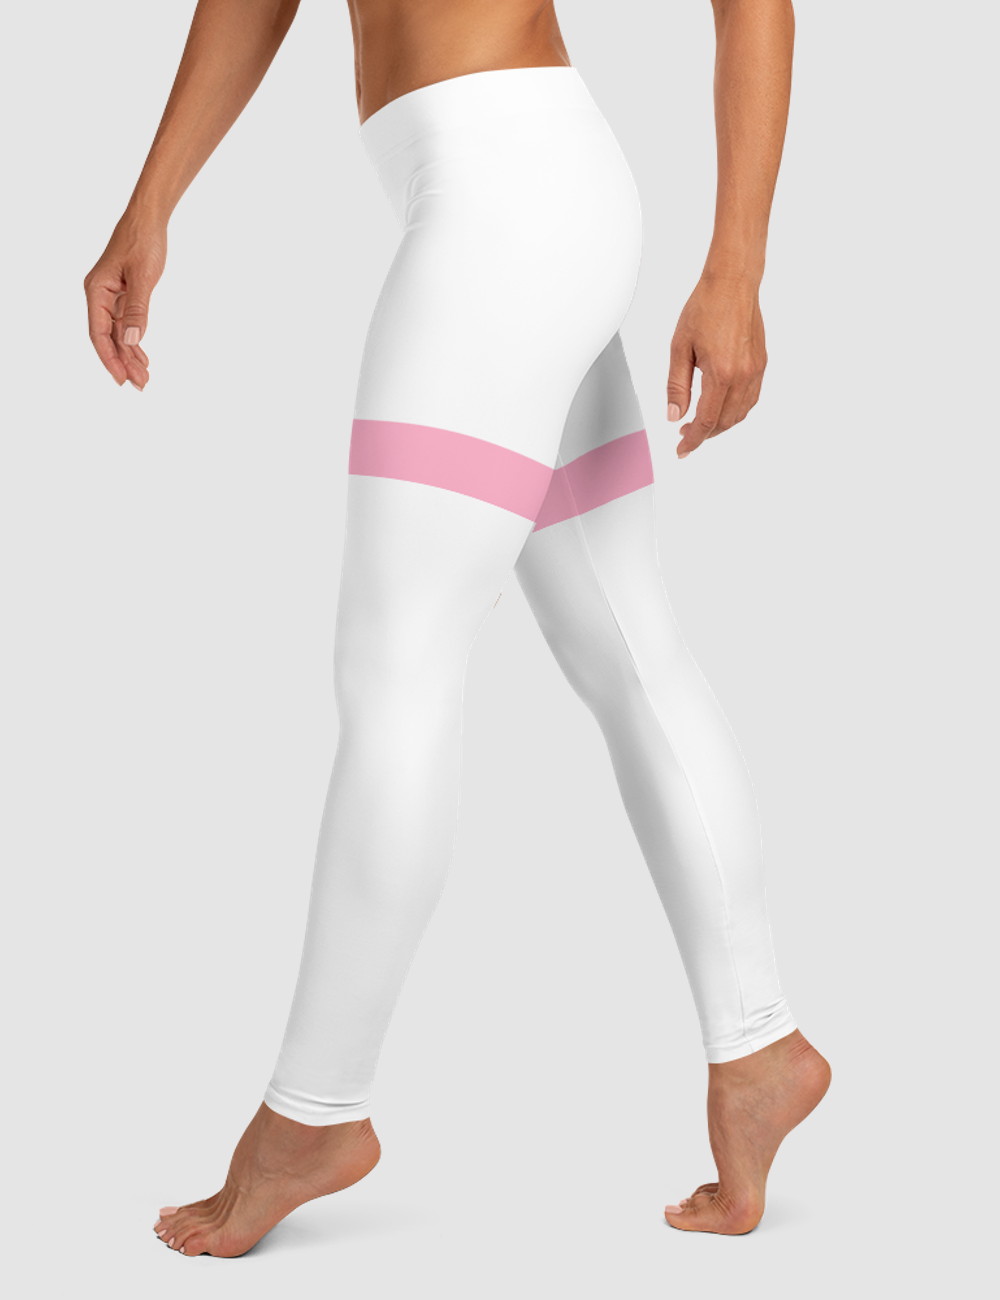 White And Pink Thigh Striped Print | Women's Standard Yoga Leggings